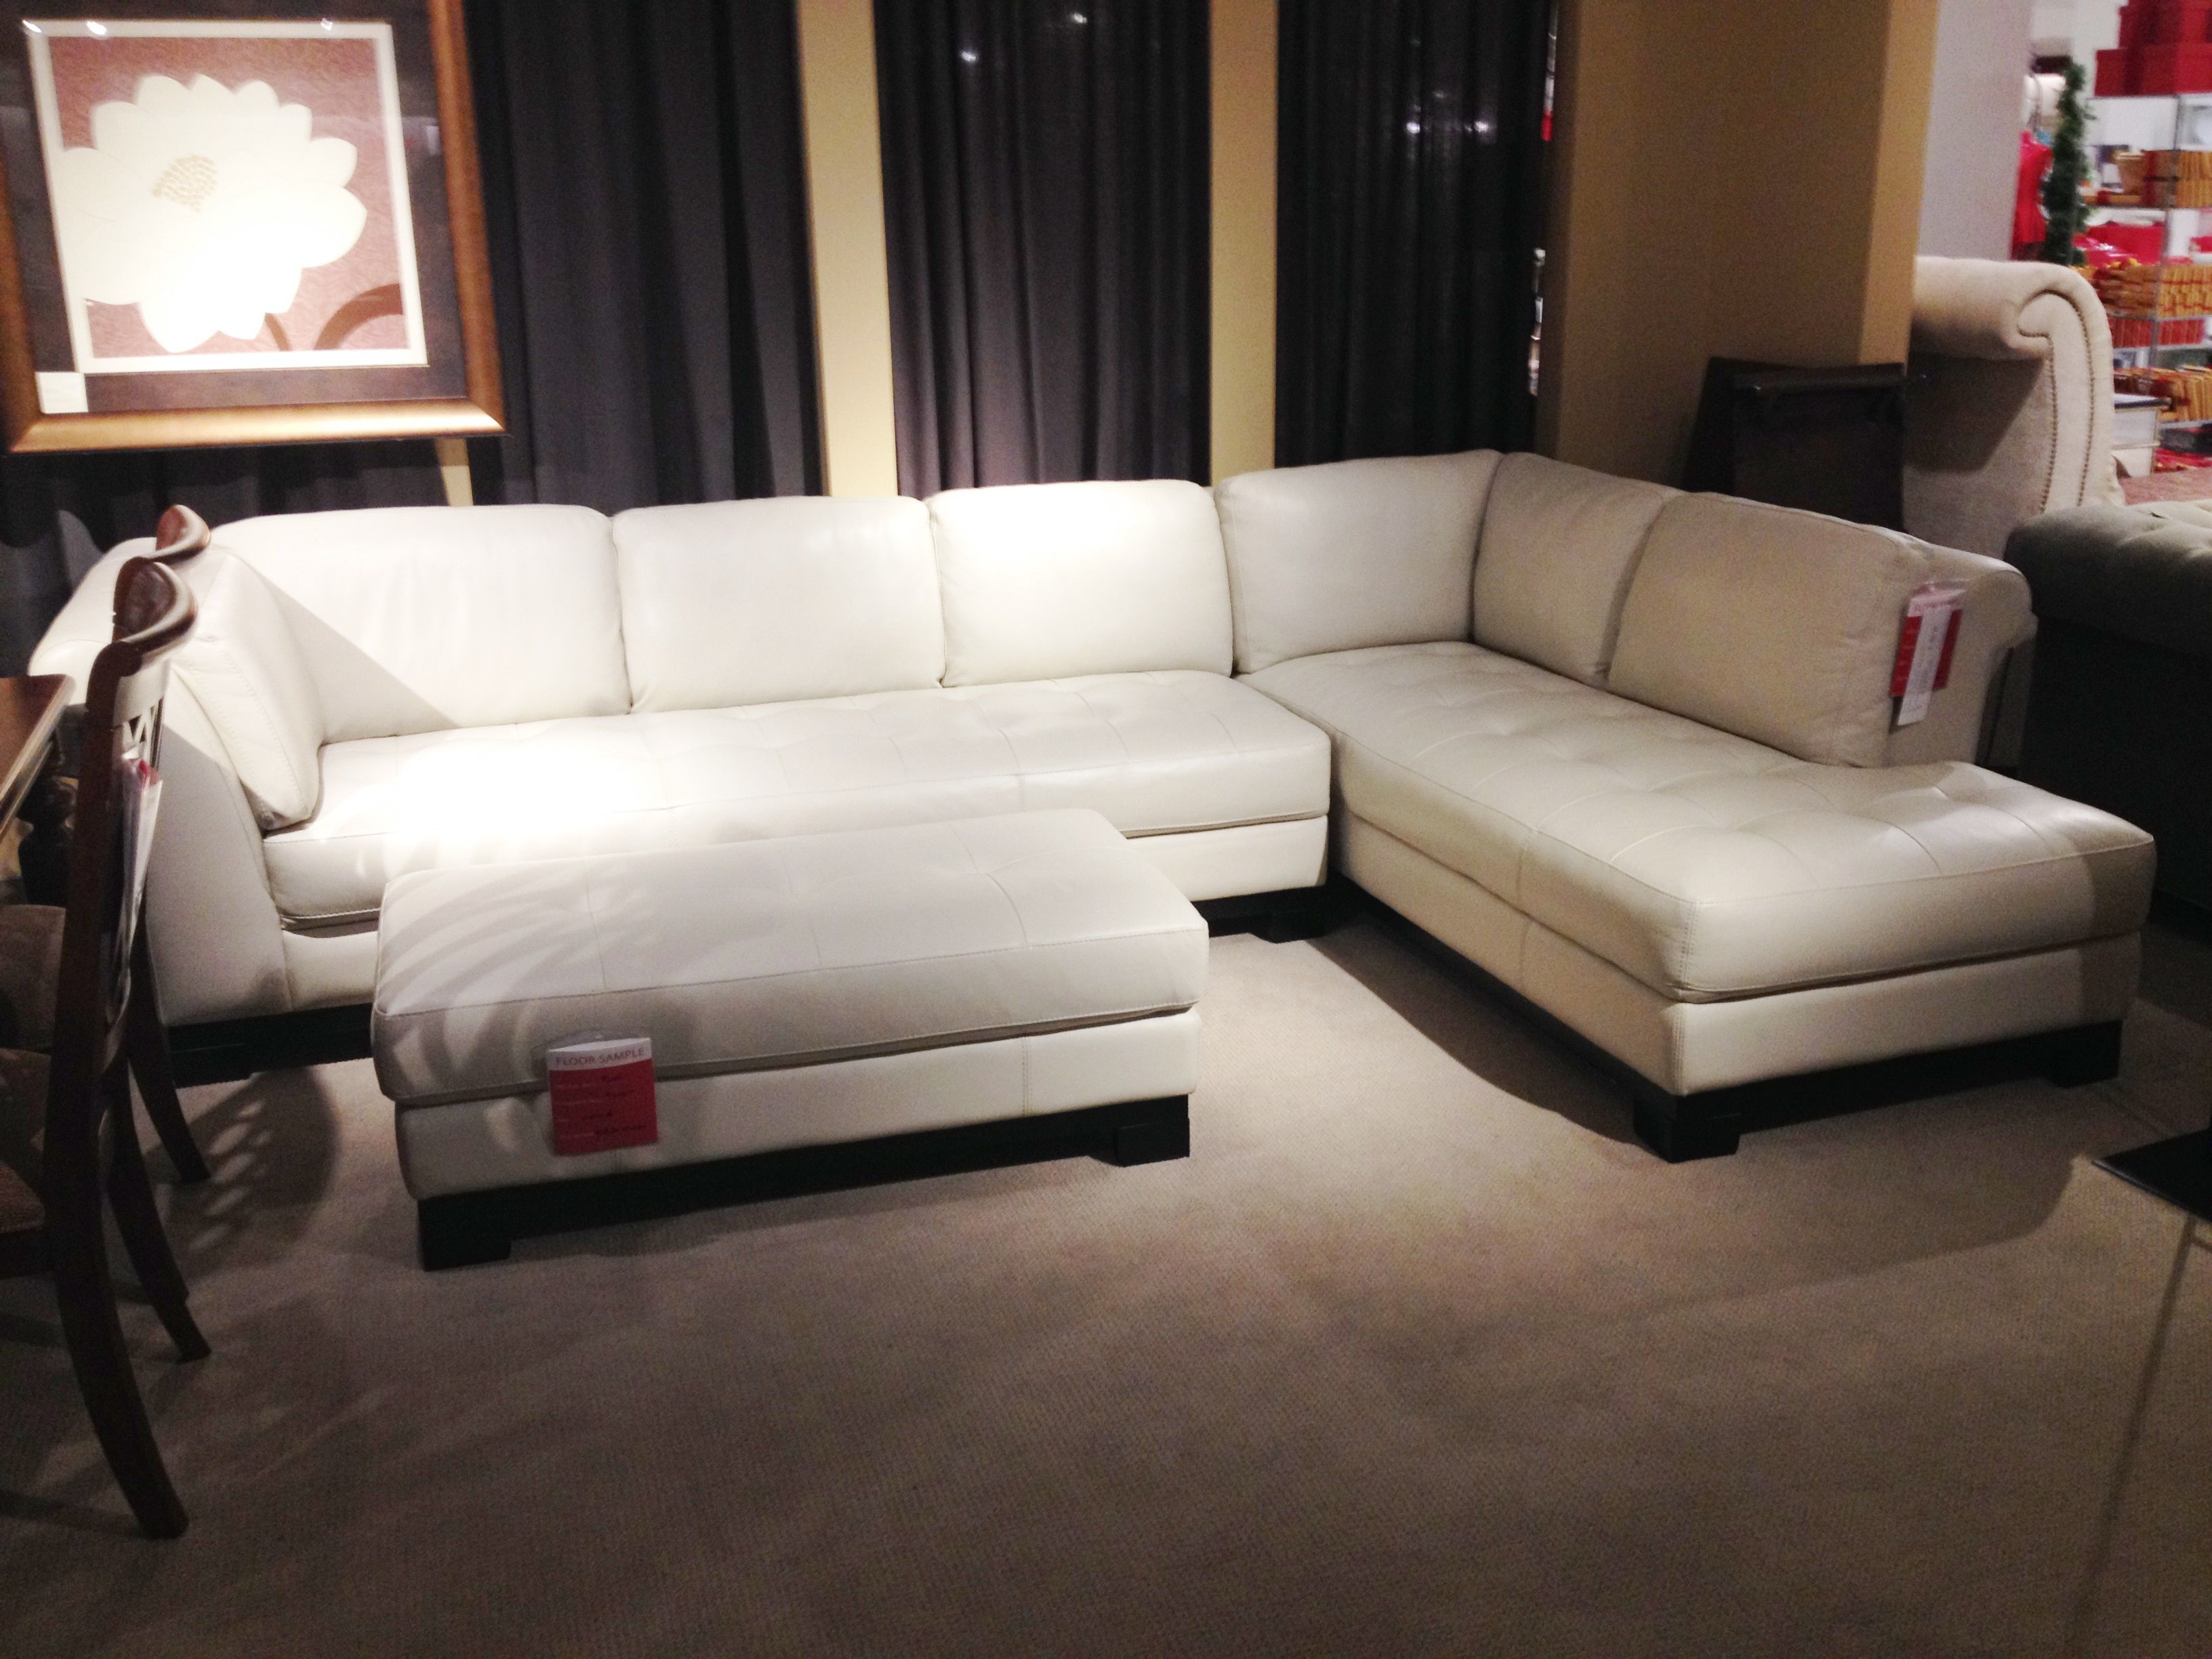 Awesome Value City Sectional Sofa Great Value City Sectional Sofa 31 On Sofa Design Ideas With Sectional Sofa Leather Sectional Sofas Leather Sectional Sofa